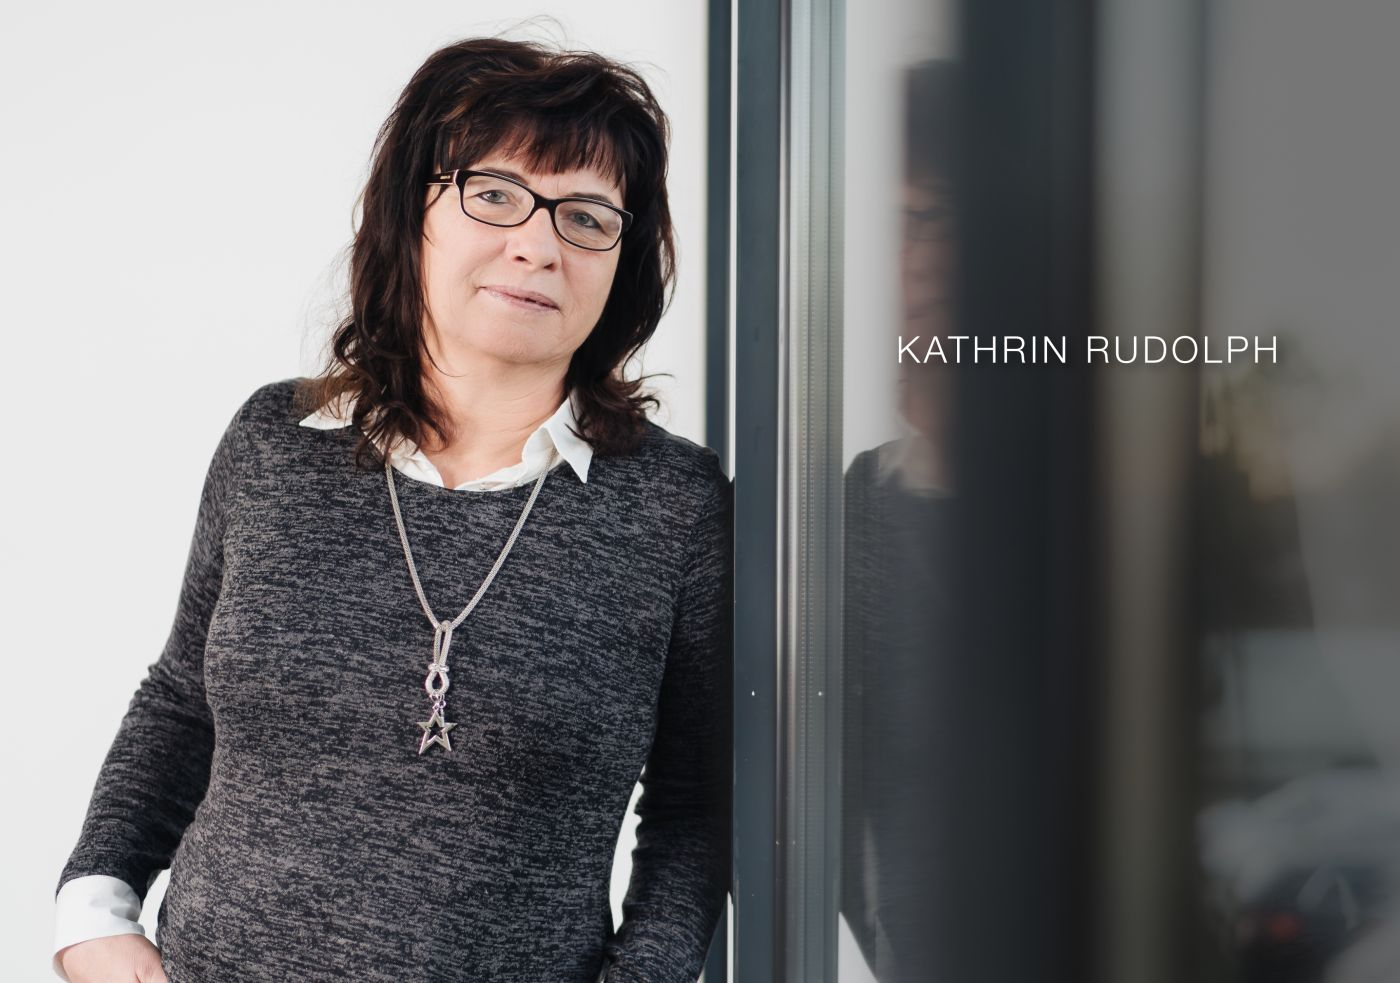 personal kathrin rudolph